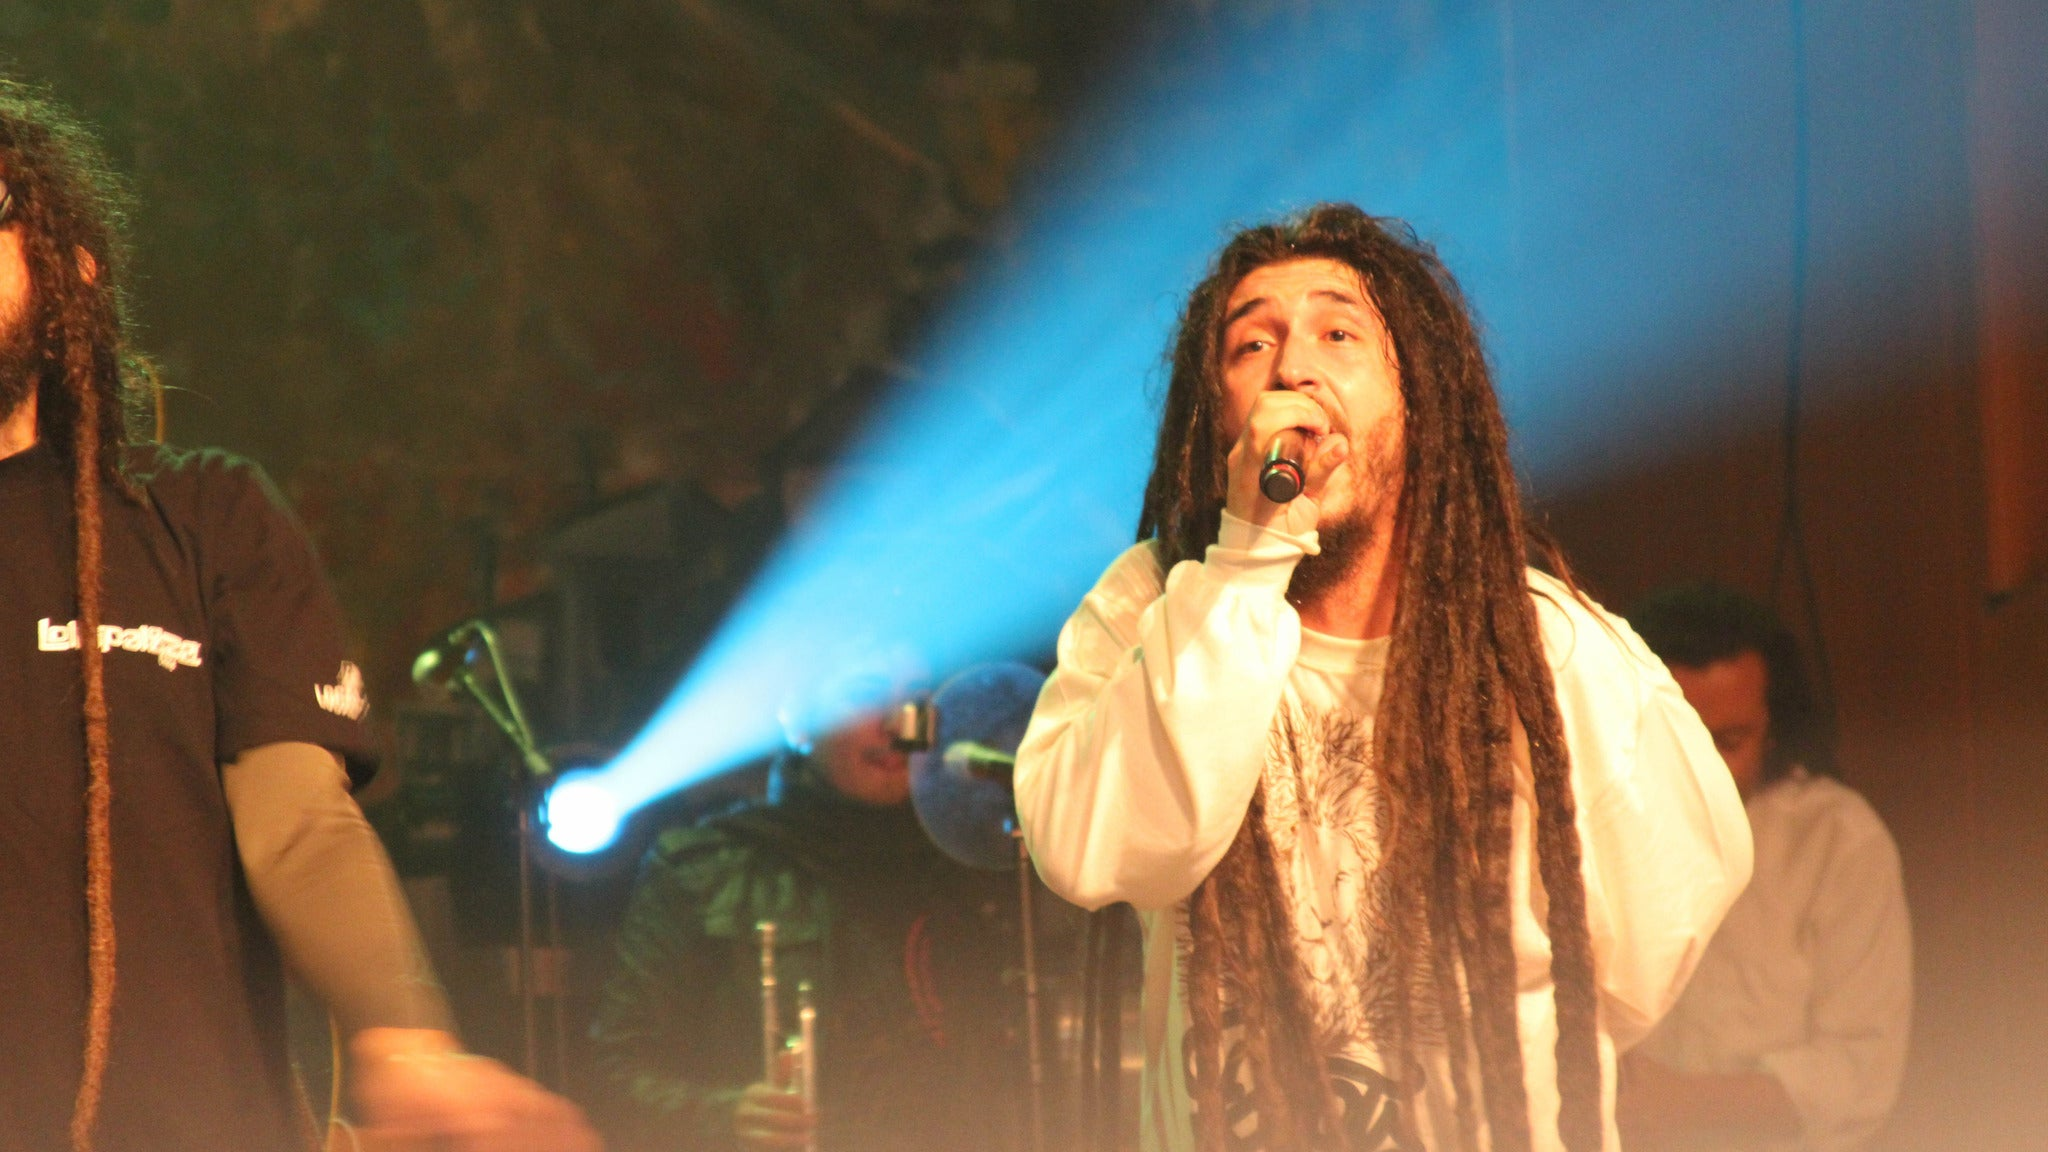 Gondwana | E.N. Young + more at Garden Amp